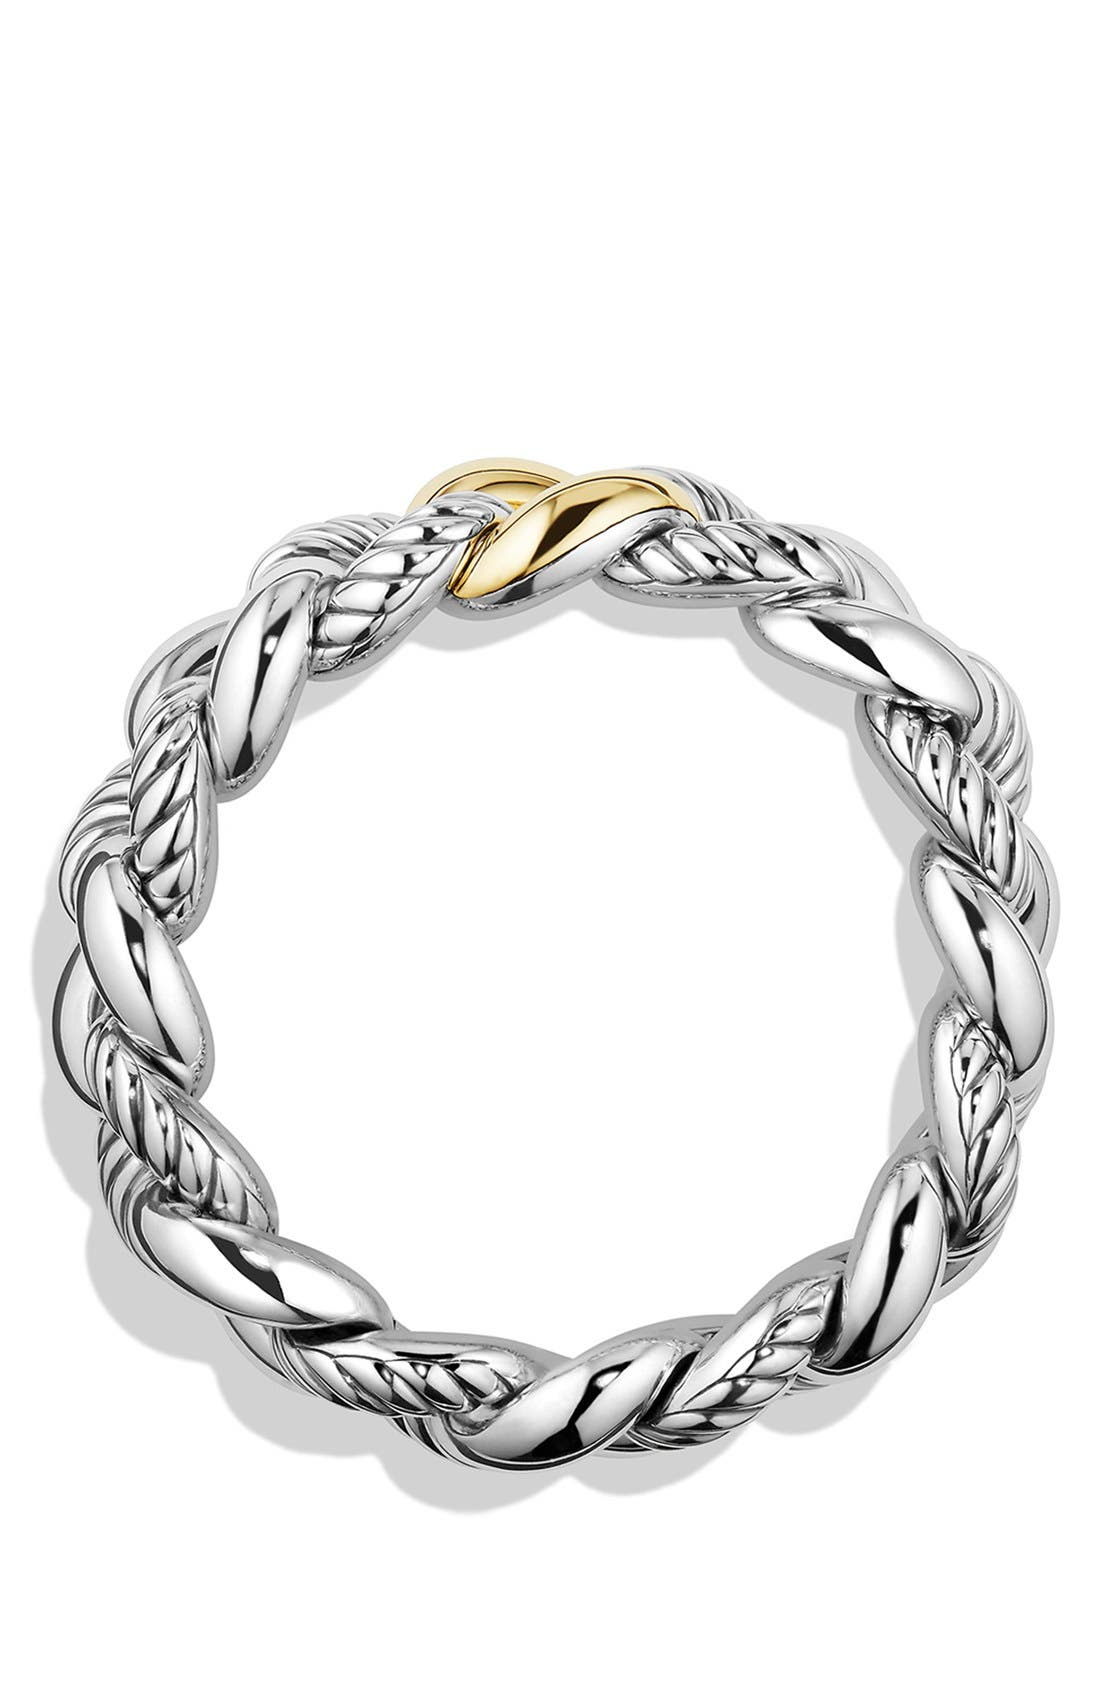 'Belmont' Curb Link Bracelet with 18K Gold,                             Alternate thumbnail 2, color,                             TWO TONE